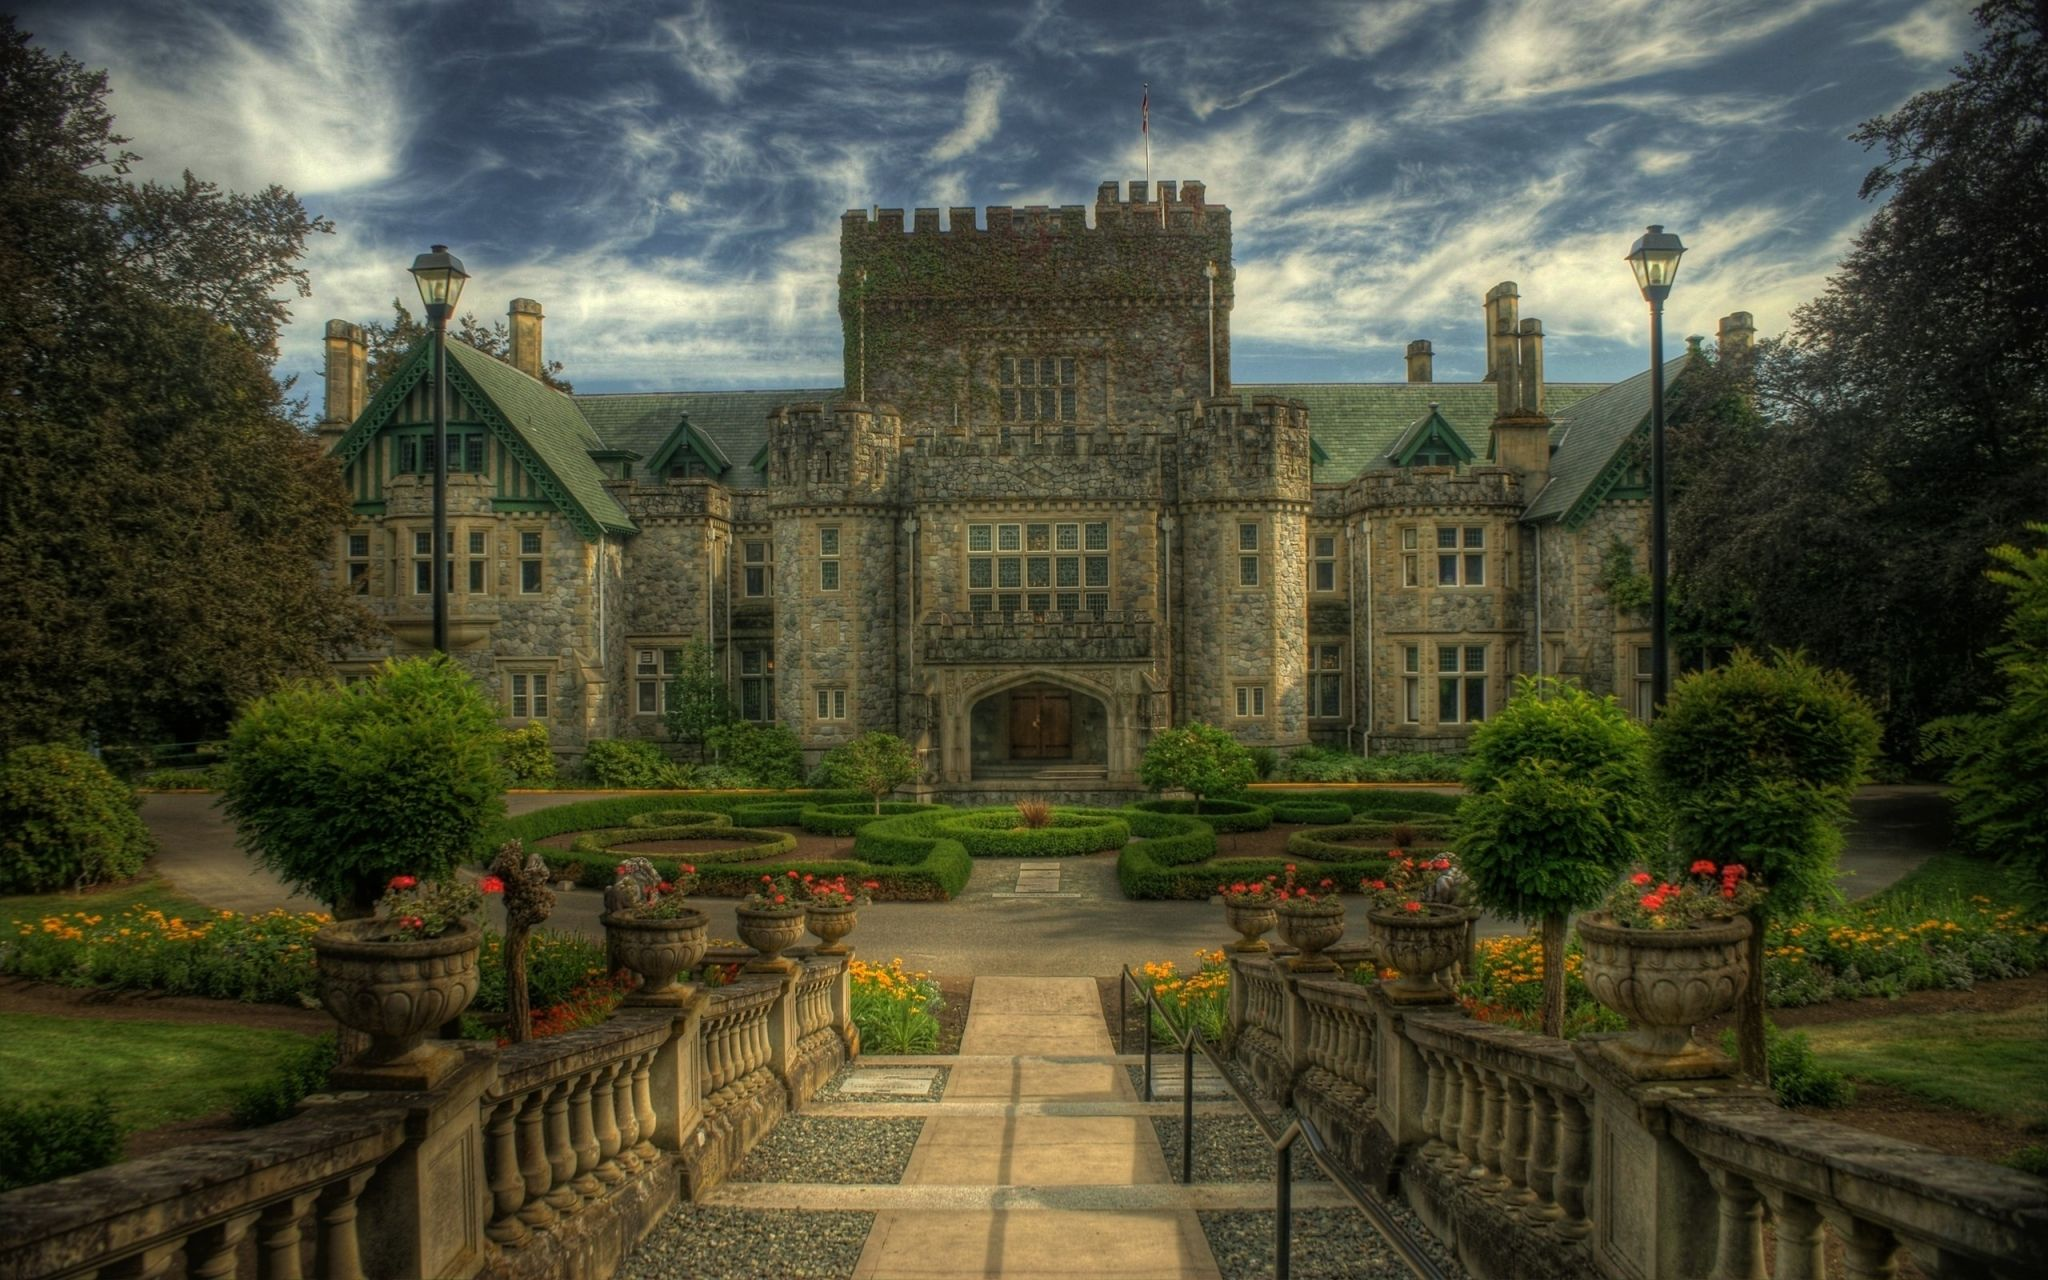 Castle free computer wallpaper download ololoshenka pinterest castle free computer wallpaper download voltagebd Choice Image